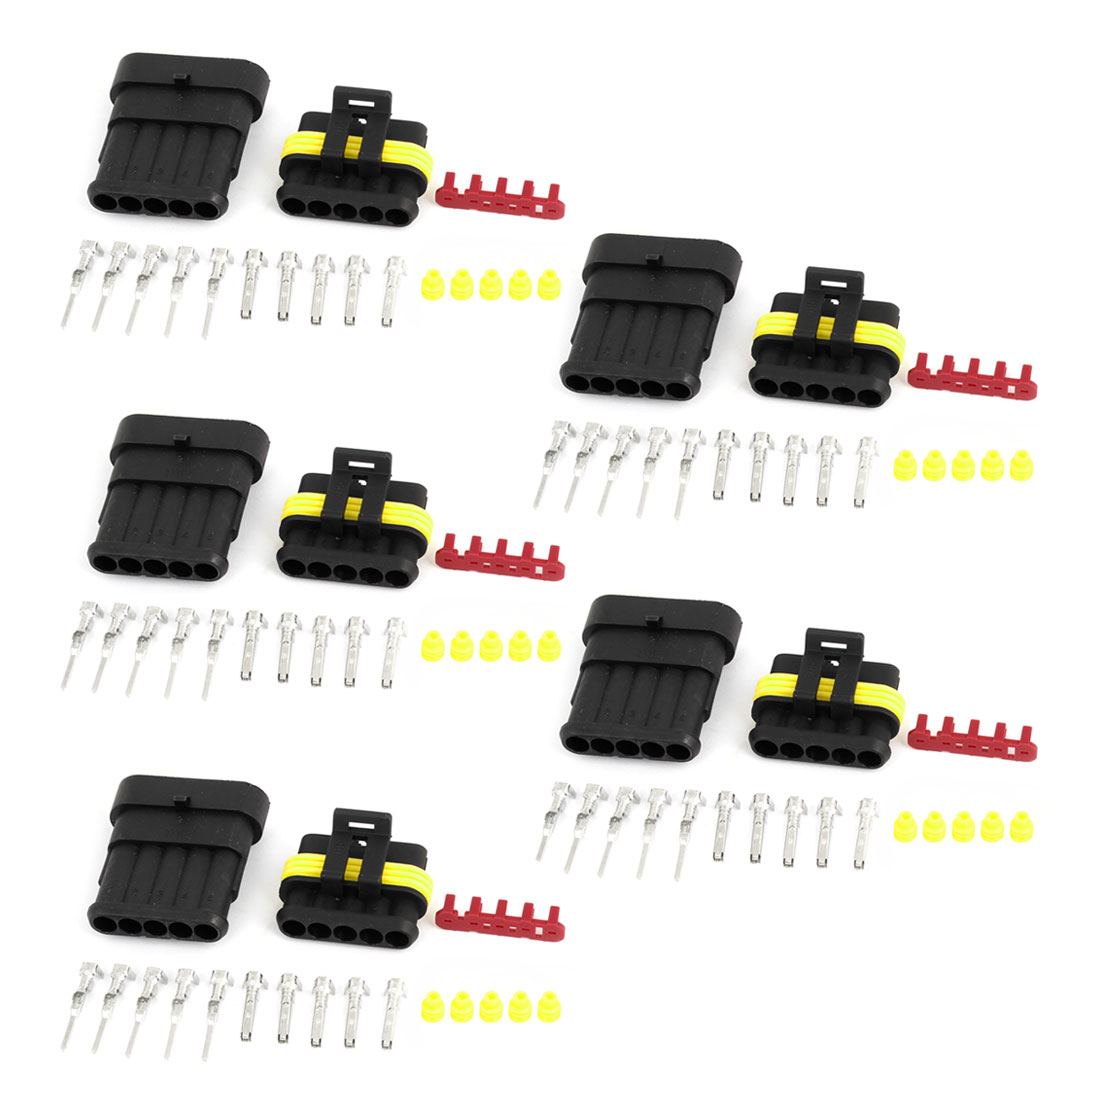 5 Kits 5-Pin 5 Positions Waterproof Wire Connectors Plugs for Car Auto Stereo